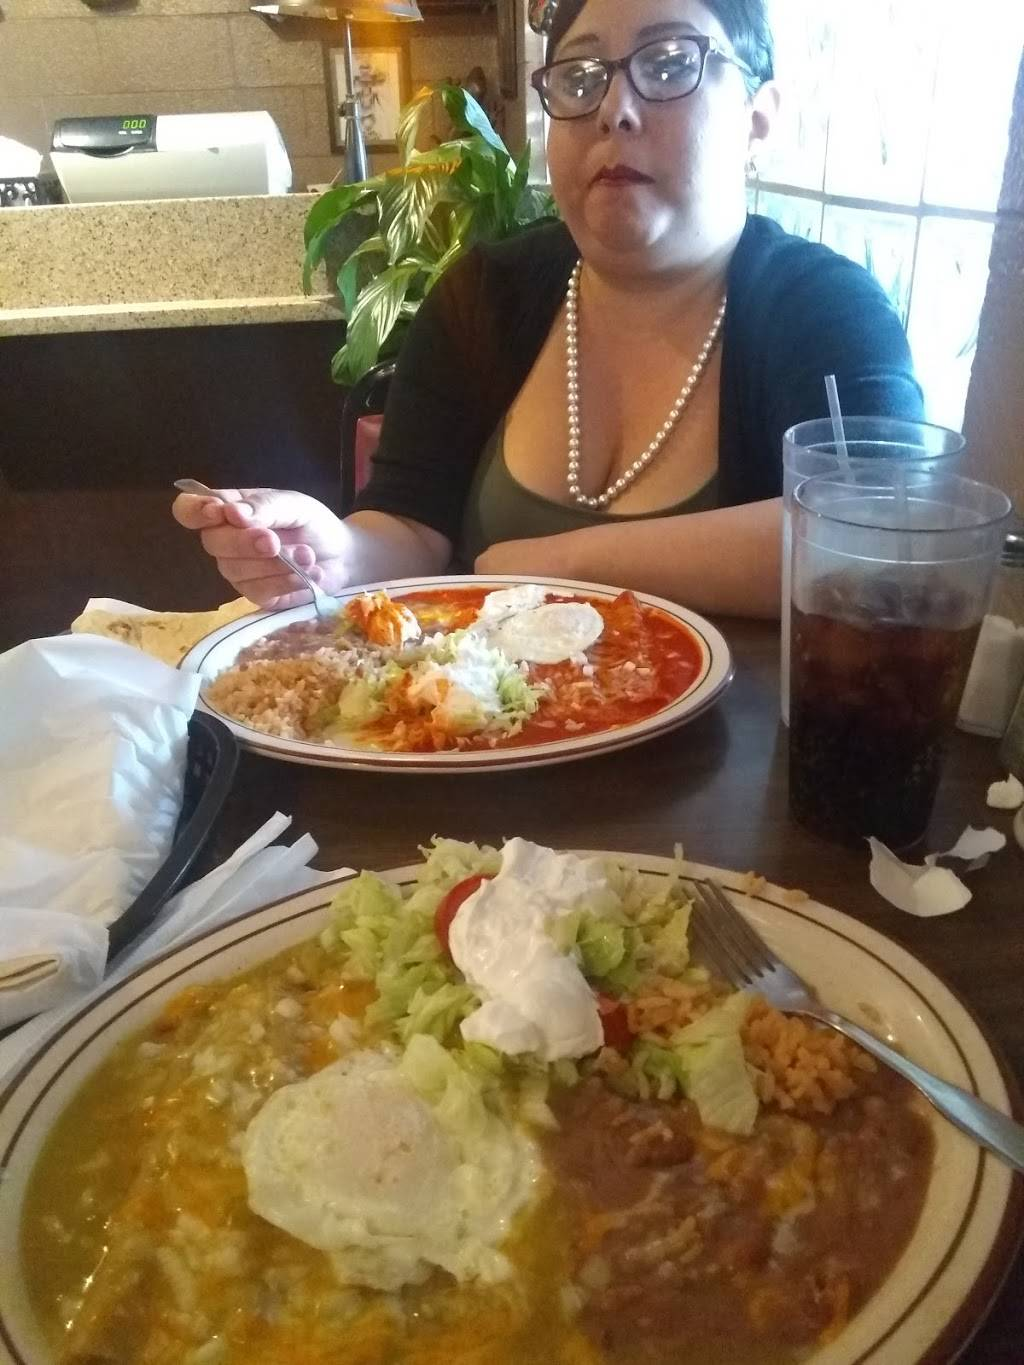 Nellies Cafe   restaurant   1226 W Hadley Ave, Las Cruces, NM 88005, USA   5755249982 OR +1 575-524-9982